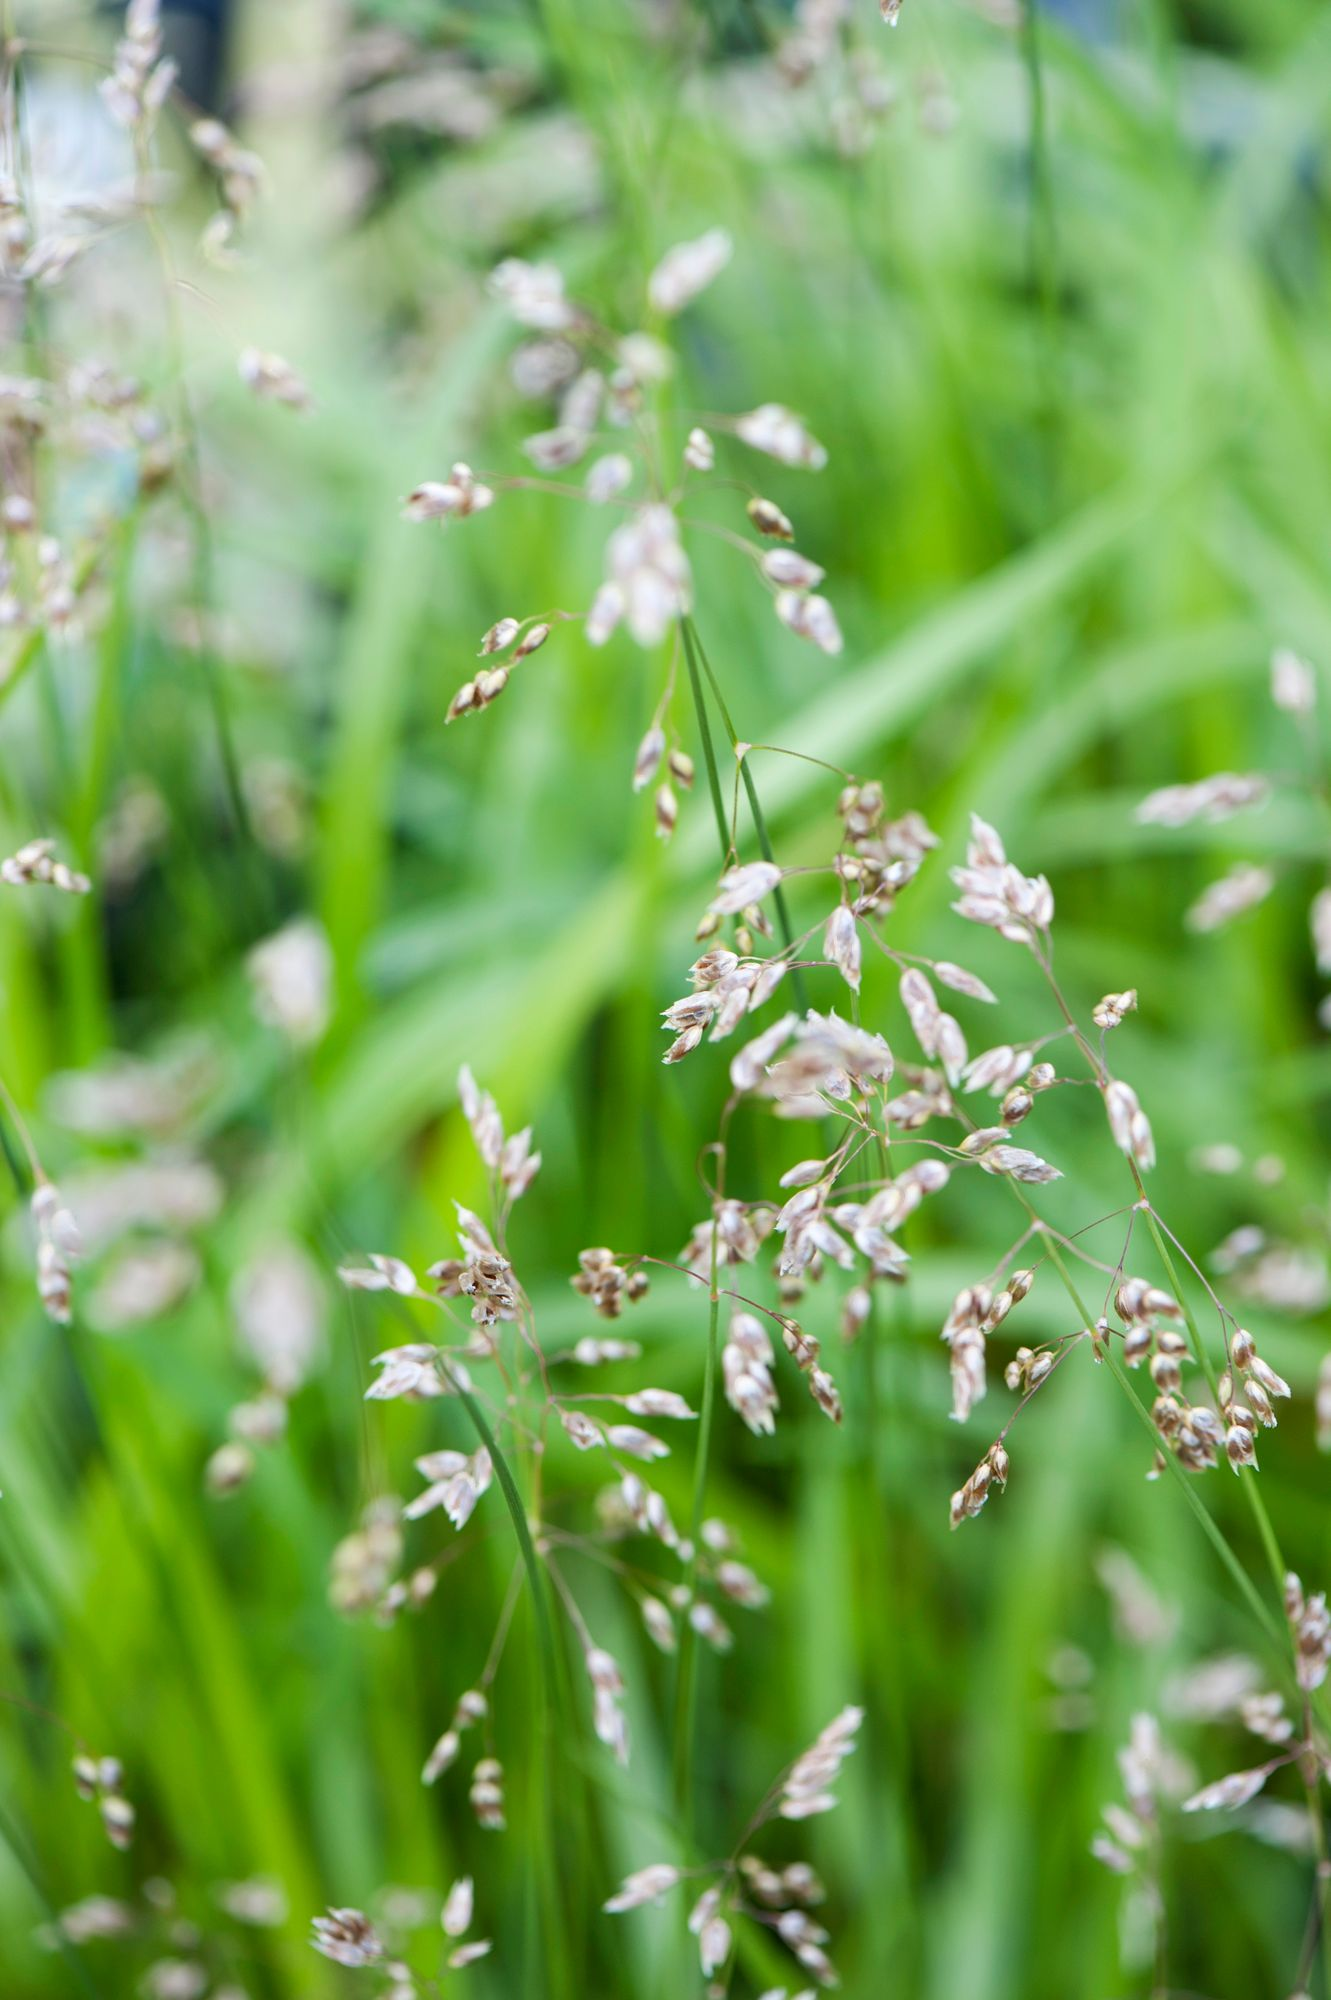 Meadow grass is a perennial fragrant hay species.